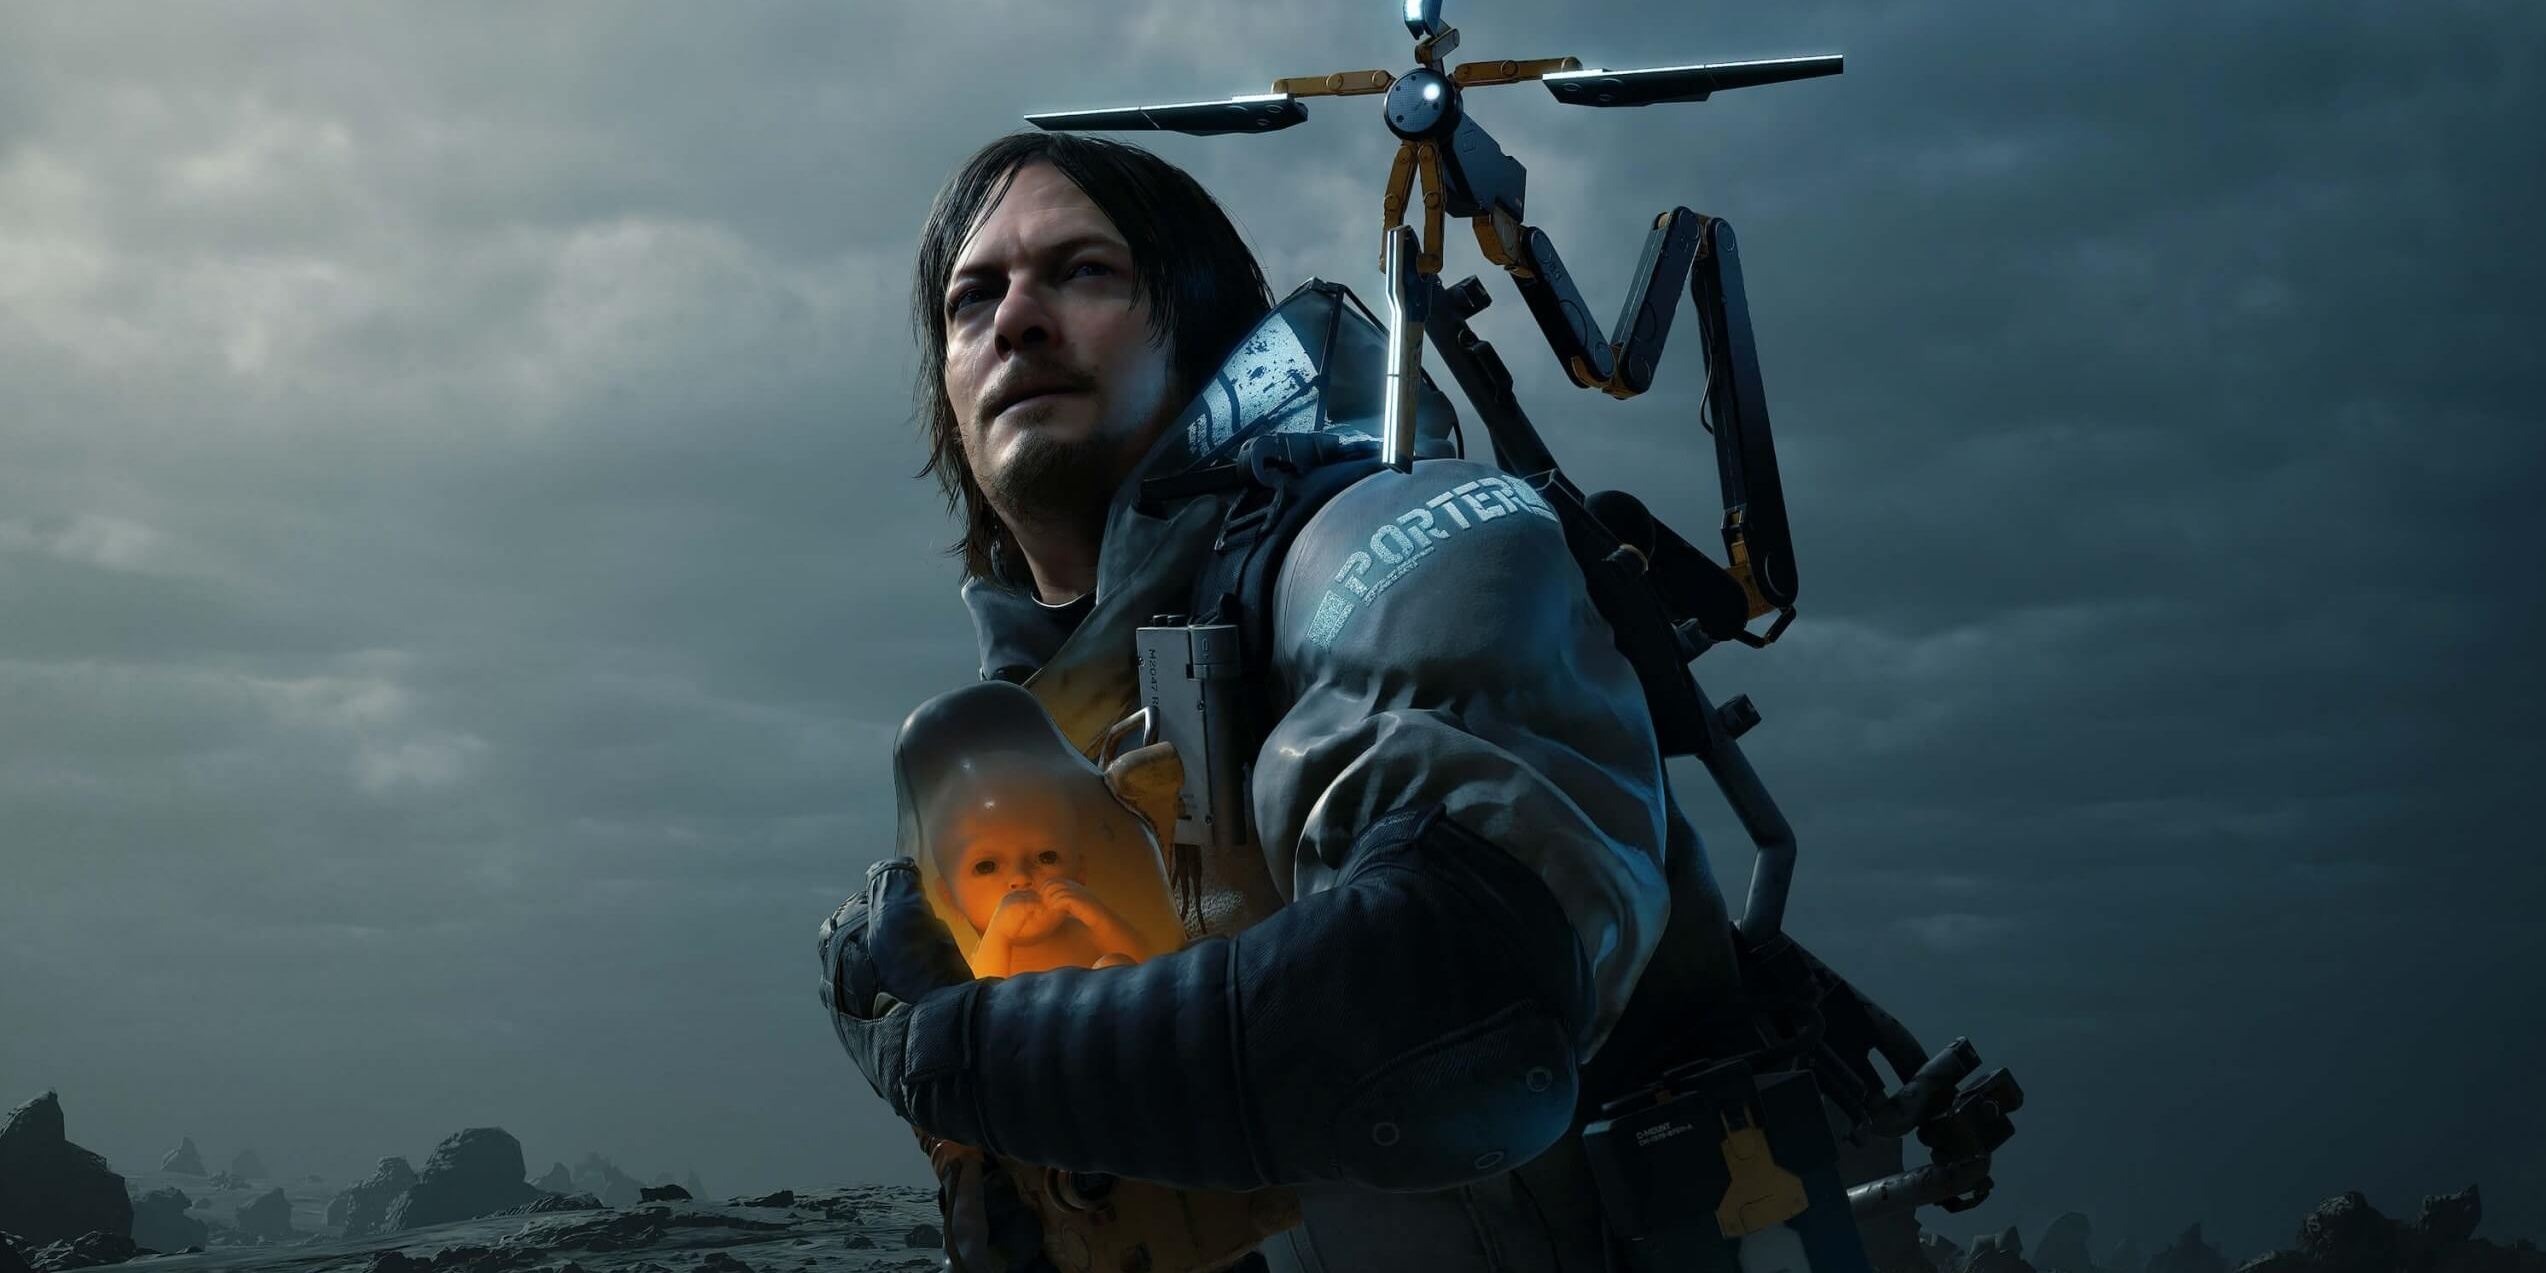 Death Stranding wins Best Music & Score at the 2019 Game Awards